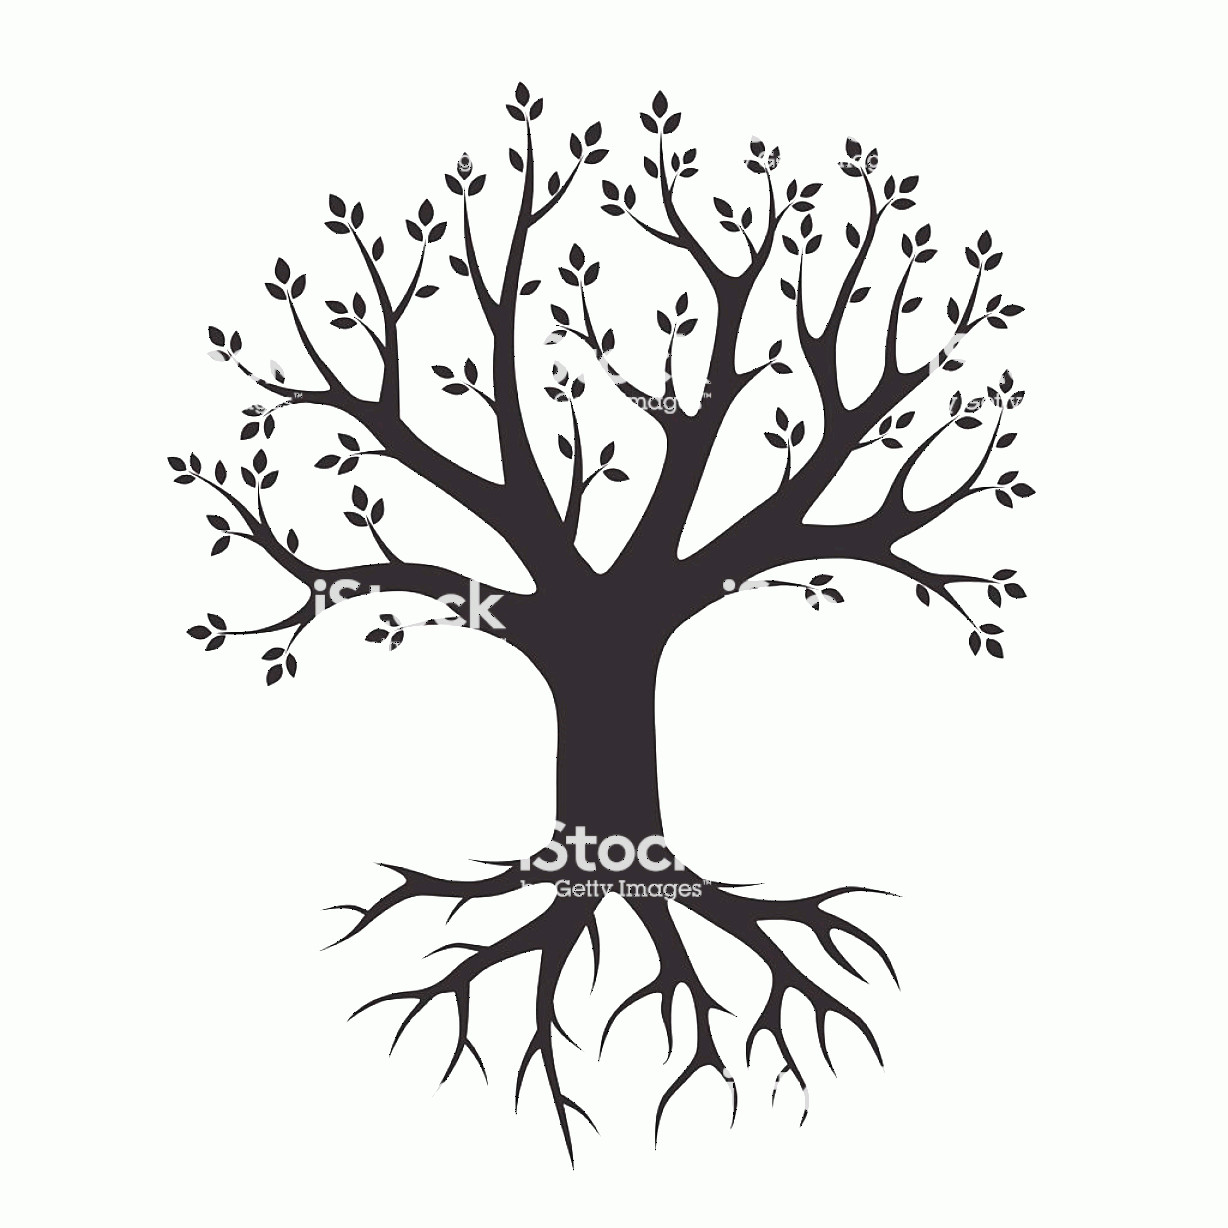 Vector Tree With Roots Drawing: Black Vector Tree And Roots Vector Illustration Park And Nature Gm